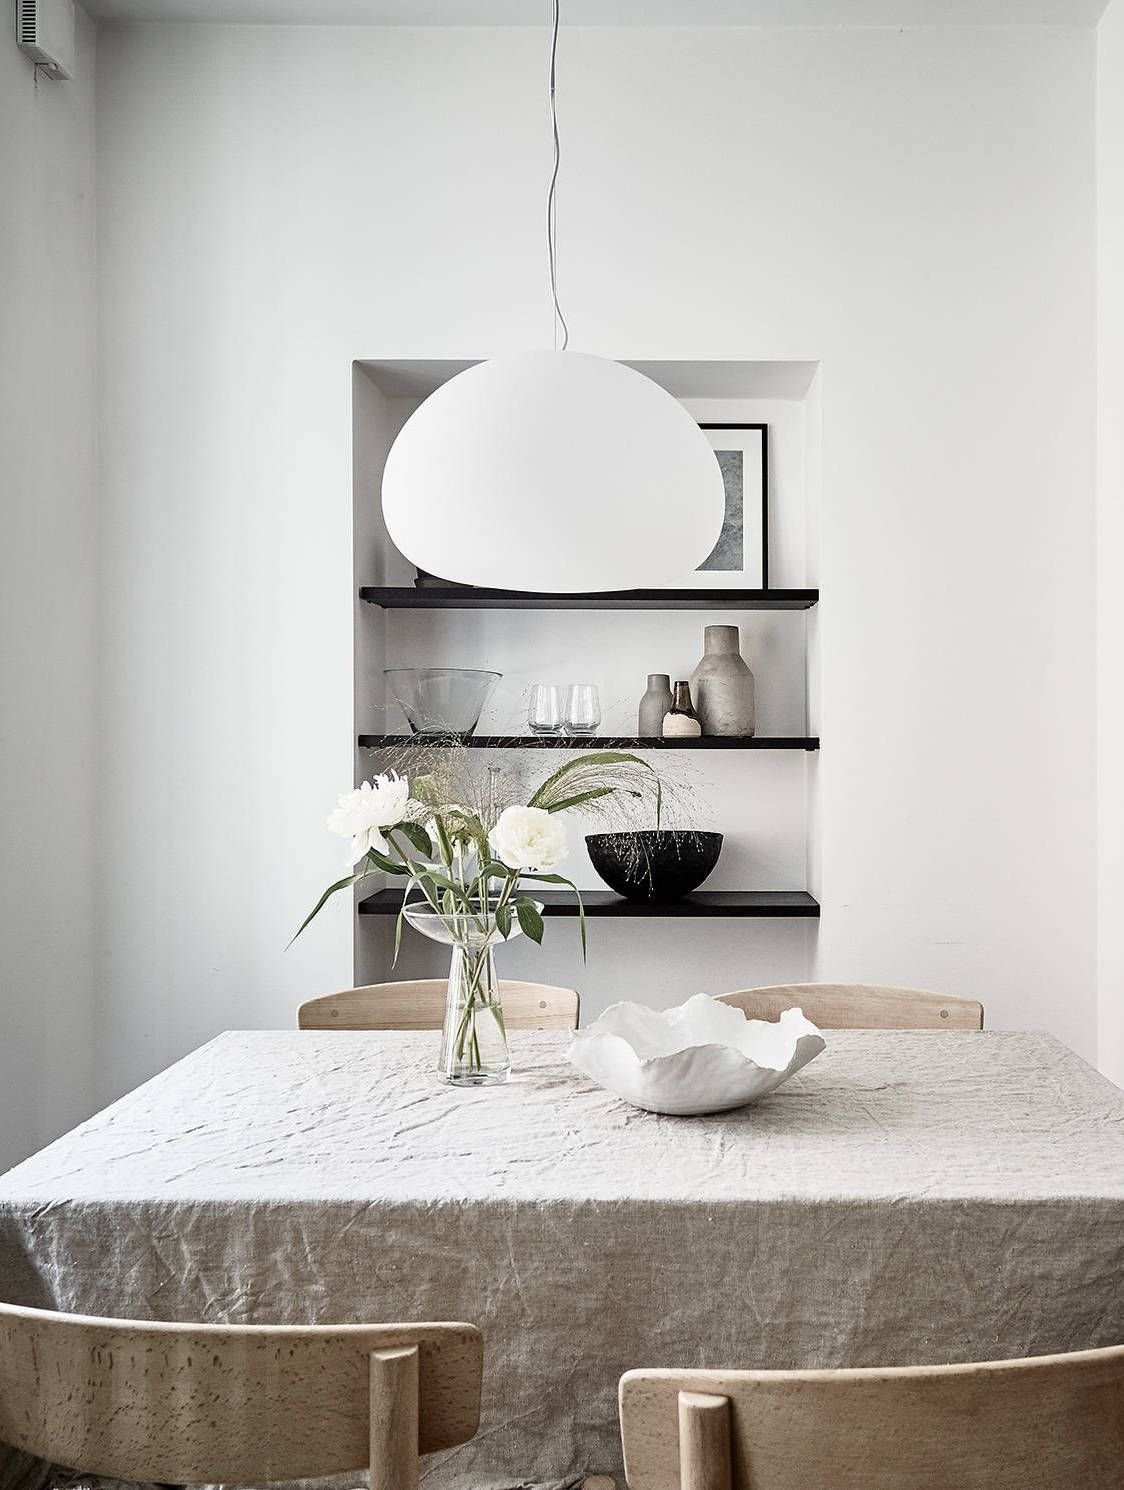 Dining Area With A Built In Shelf